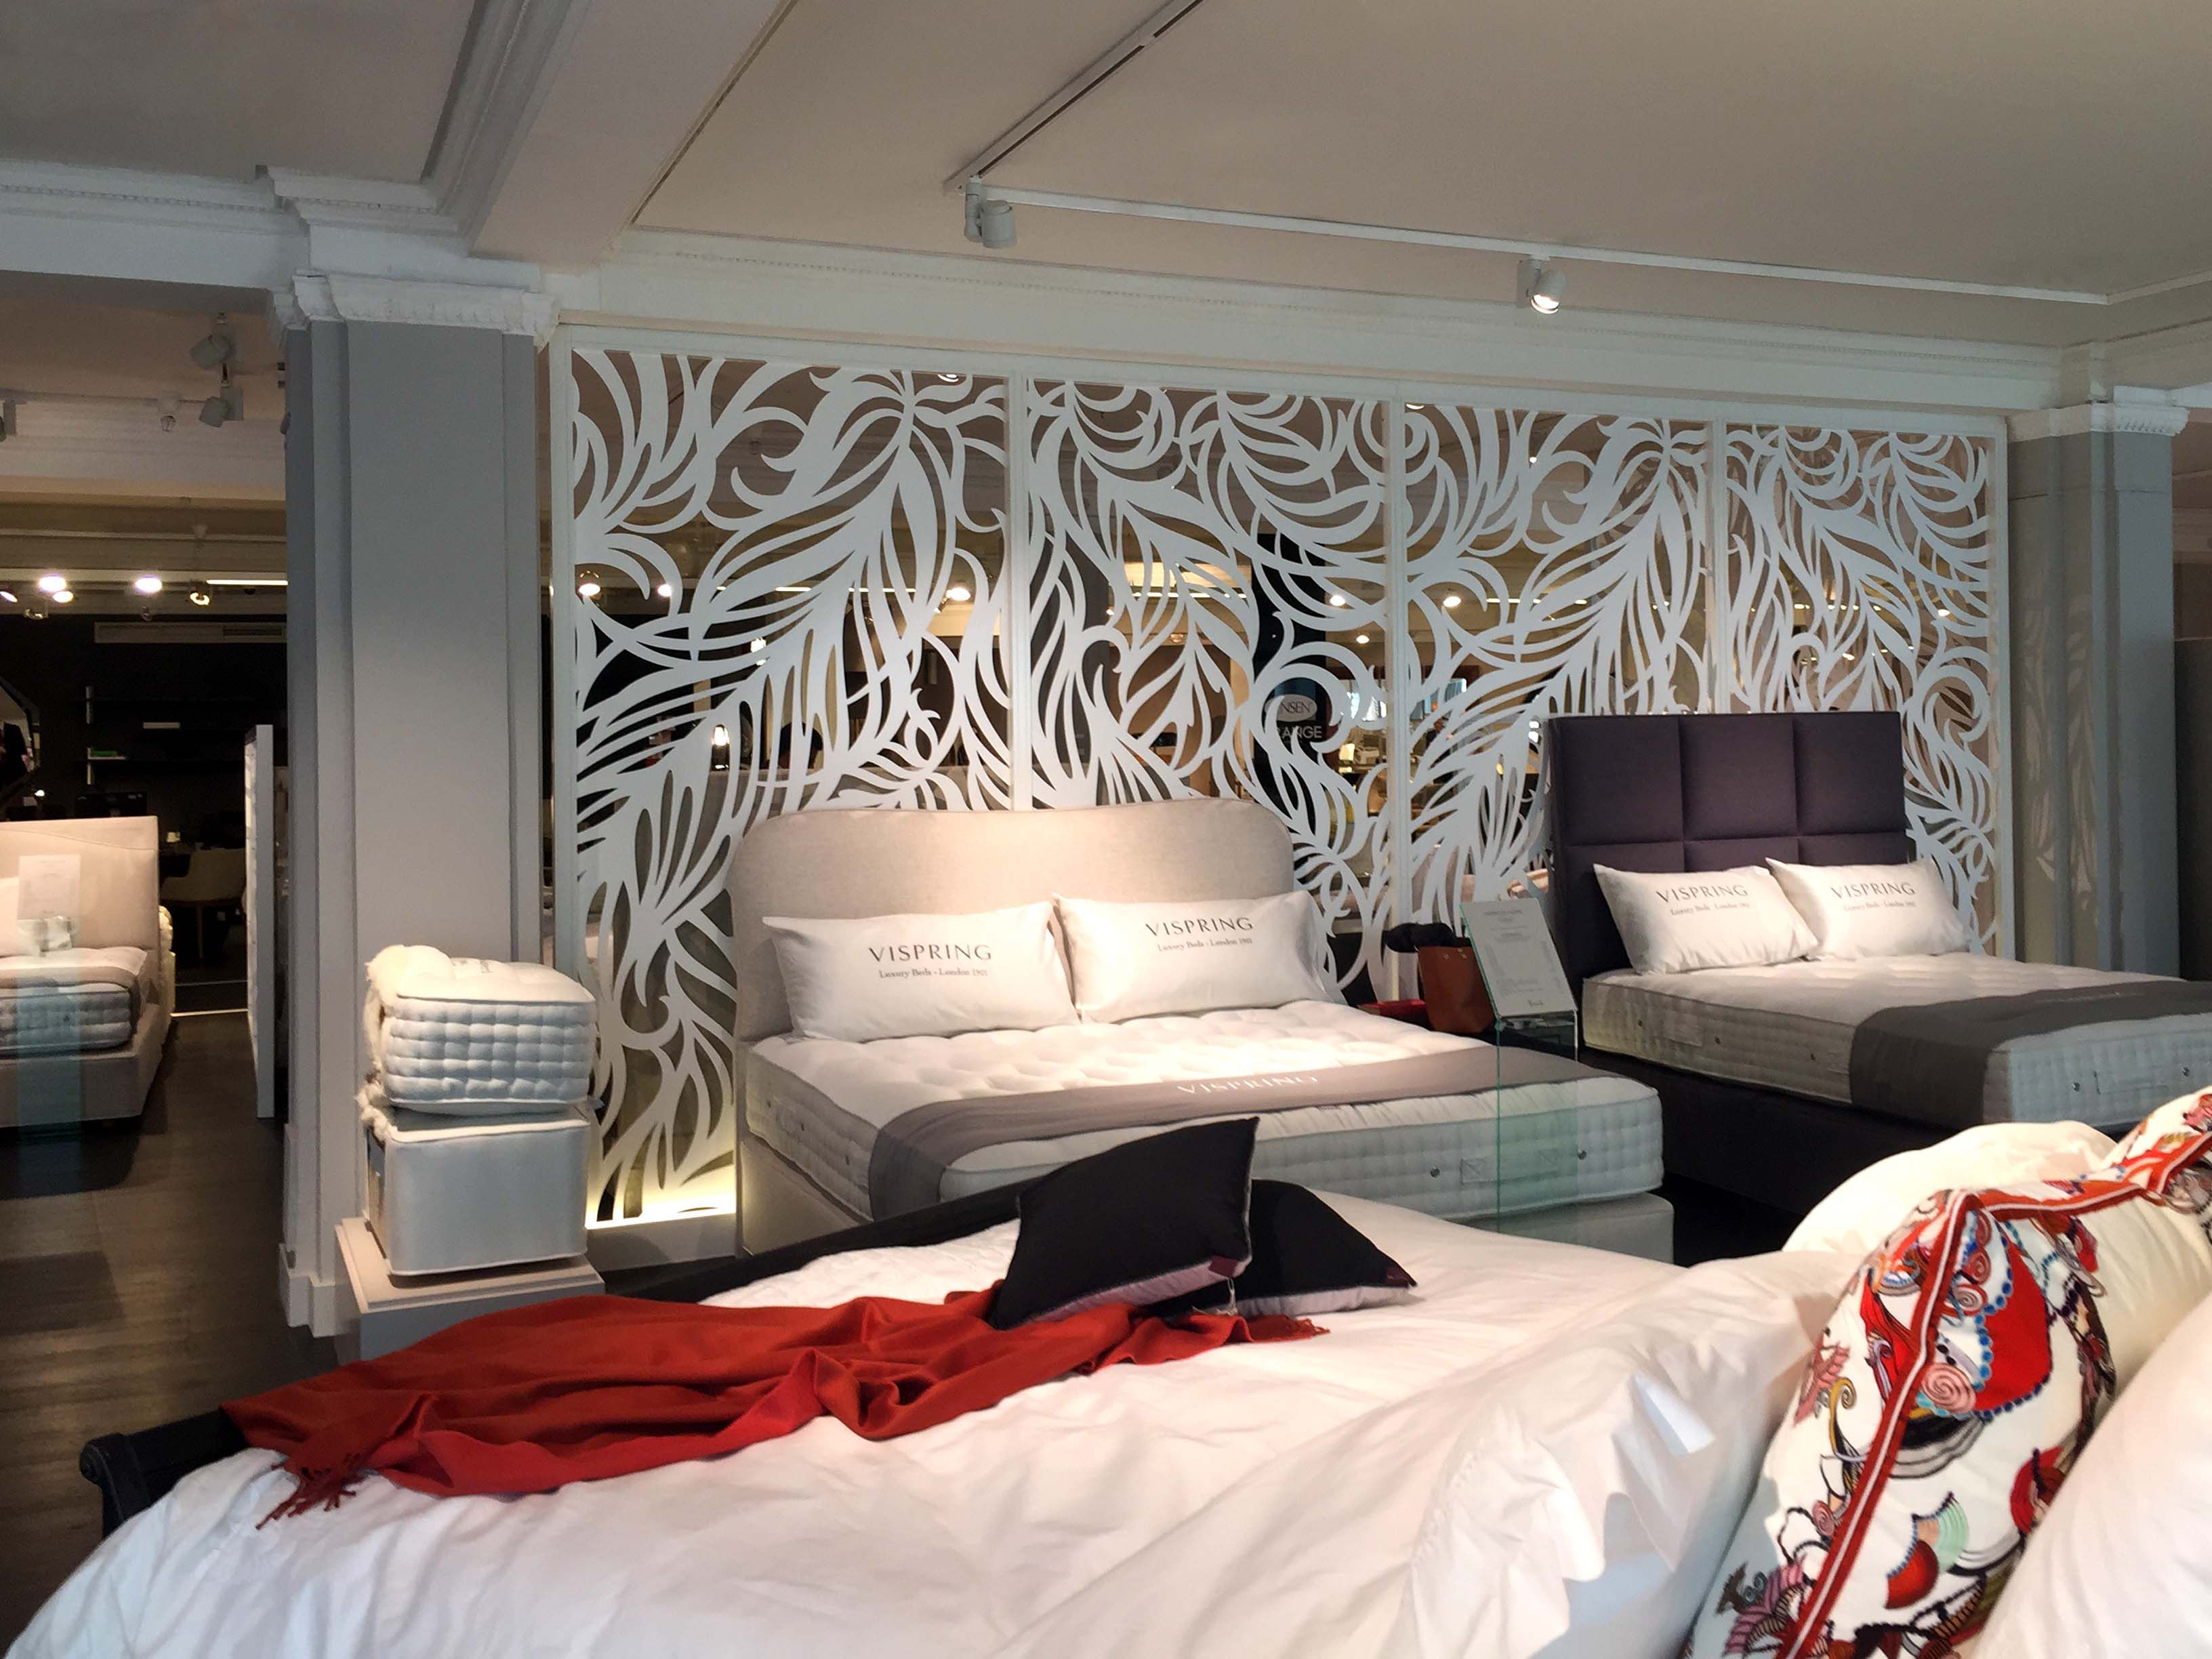 Laser cut screens. Harrods, Knightsbridge London. 3rd Floor Bed studio. Feather design by Miles and Lincoln. www.milesandlincoln.com